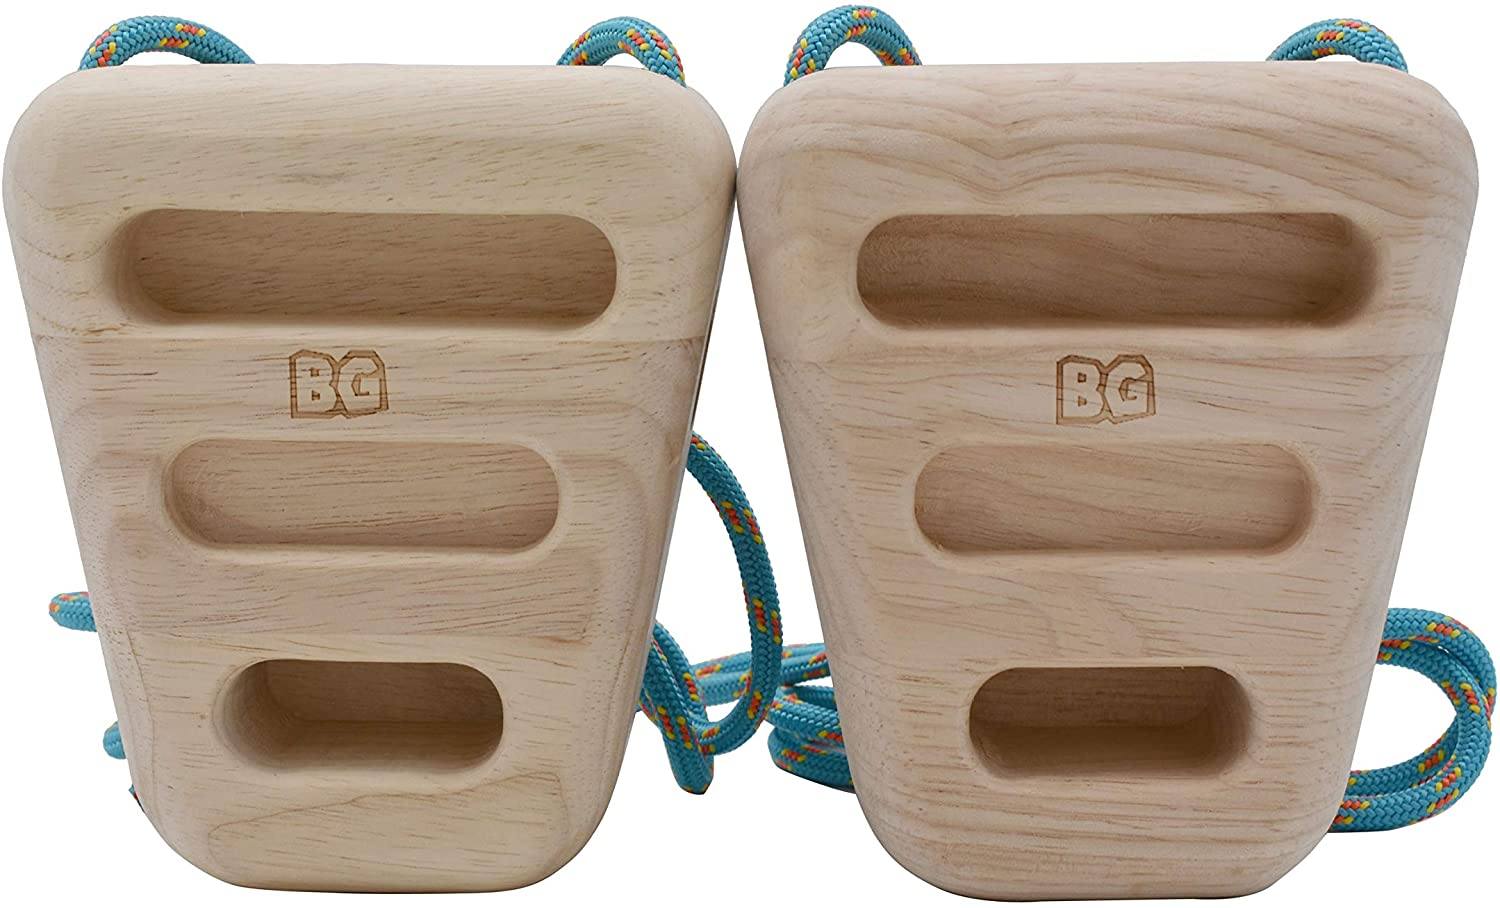 BG Climbing The Only Double Sided Wood Rock Climbing Rock Rings | Compact & Portable Hangboard for Training | Home Equipment for Finger Strength & Fitness